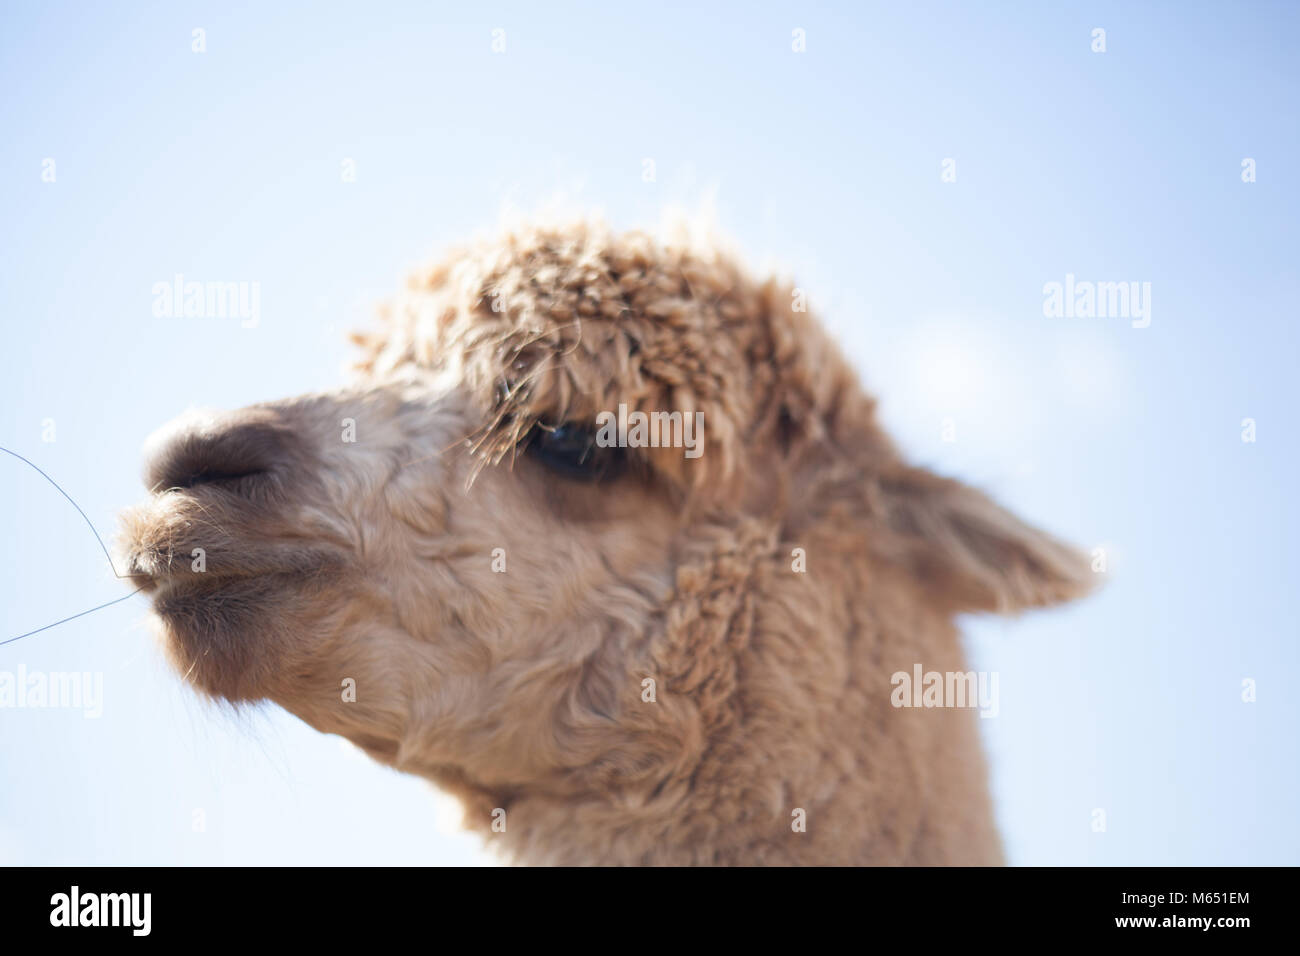 Close up of single lama showing character and personality on sunny day - Stock Image